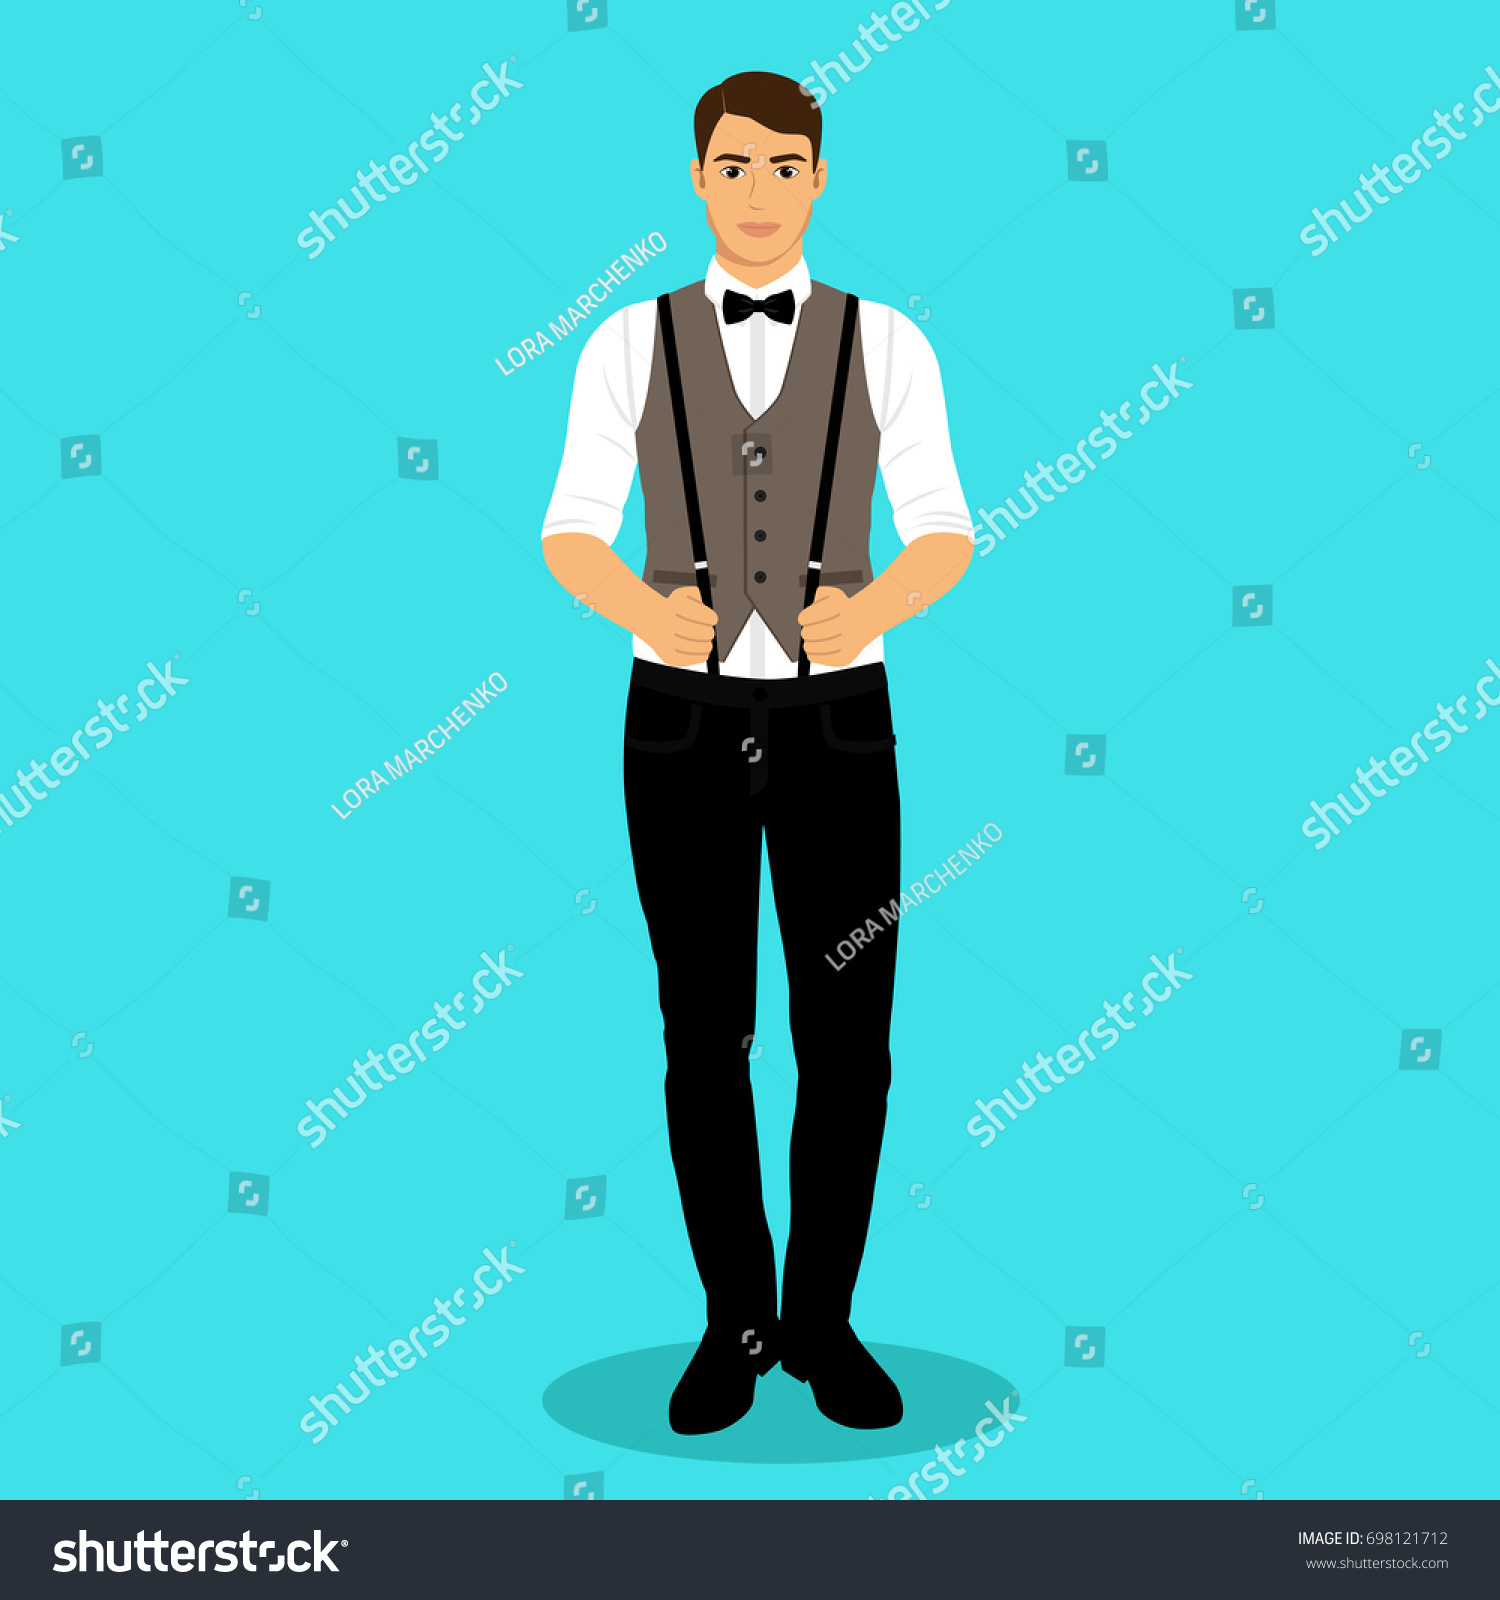 Man Suspenders Groom Clothing Wedding Mens Stock Vector 698121712 ...